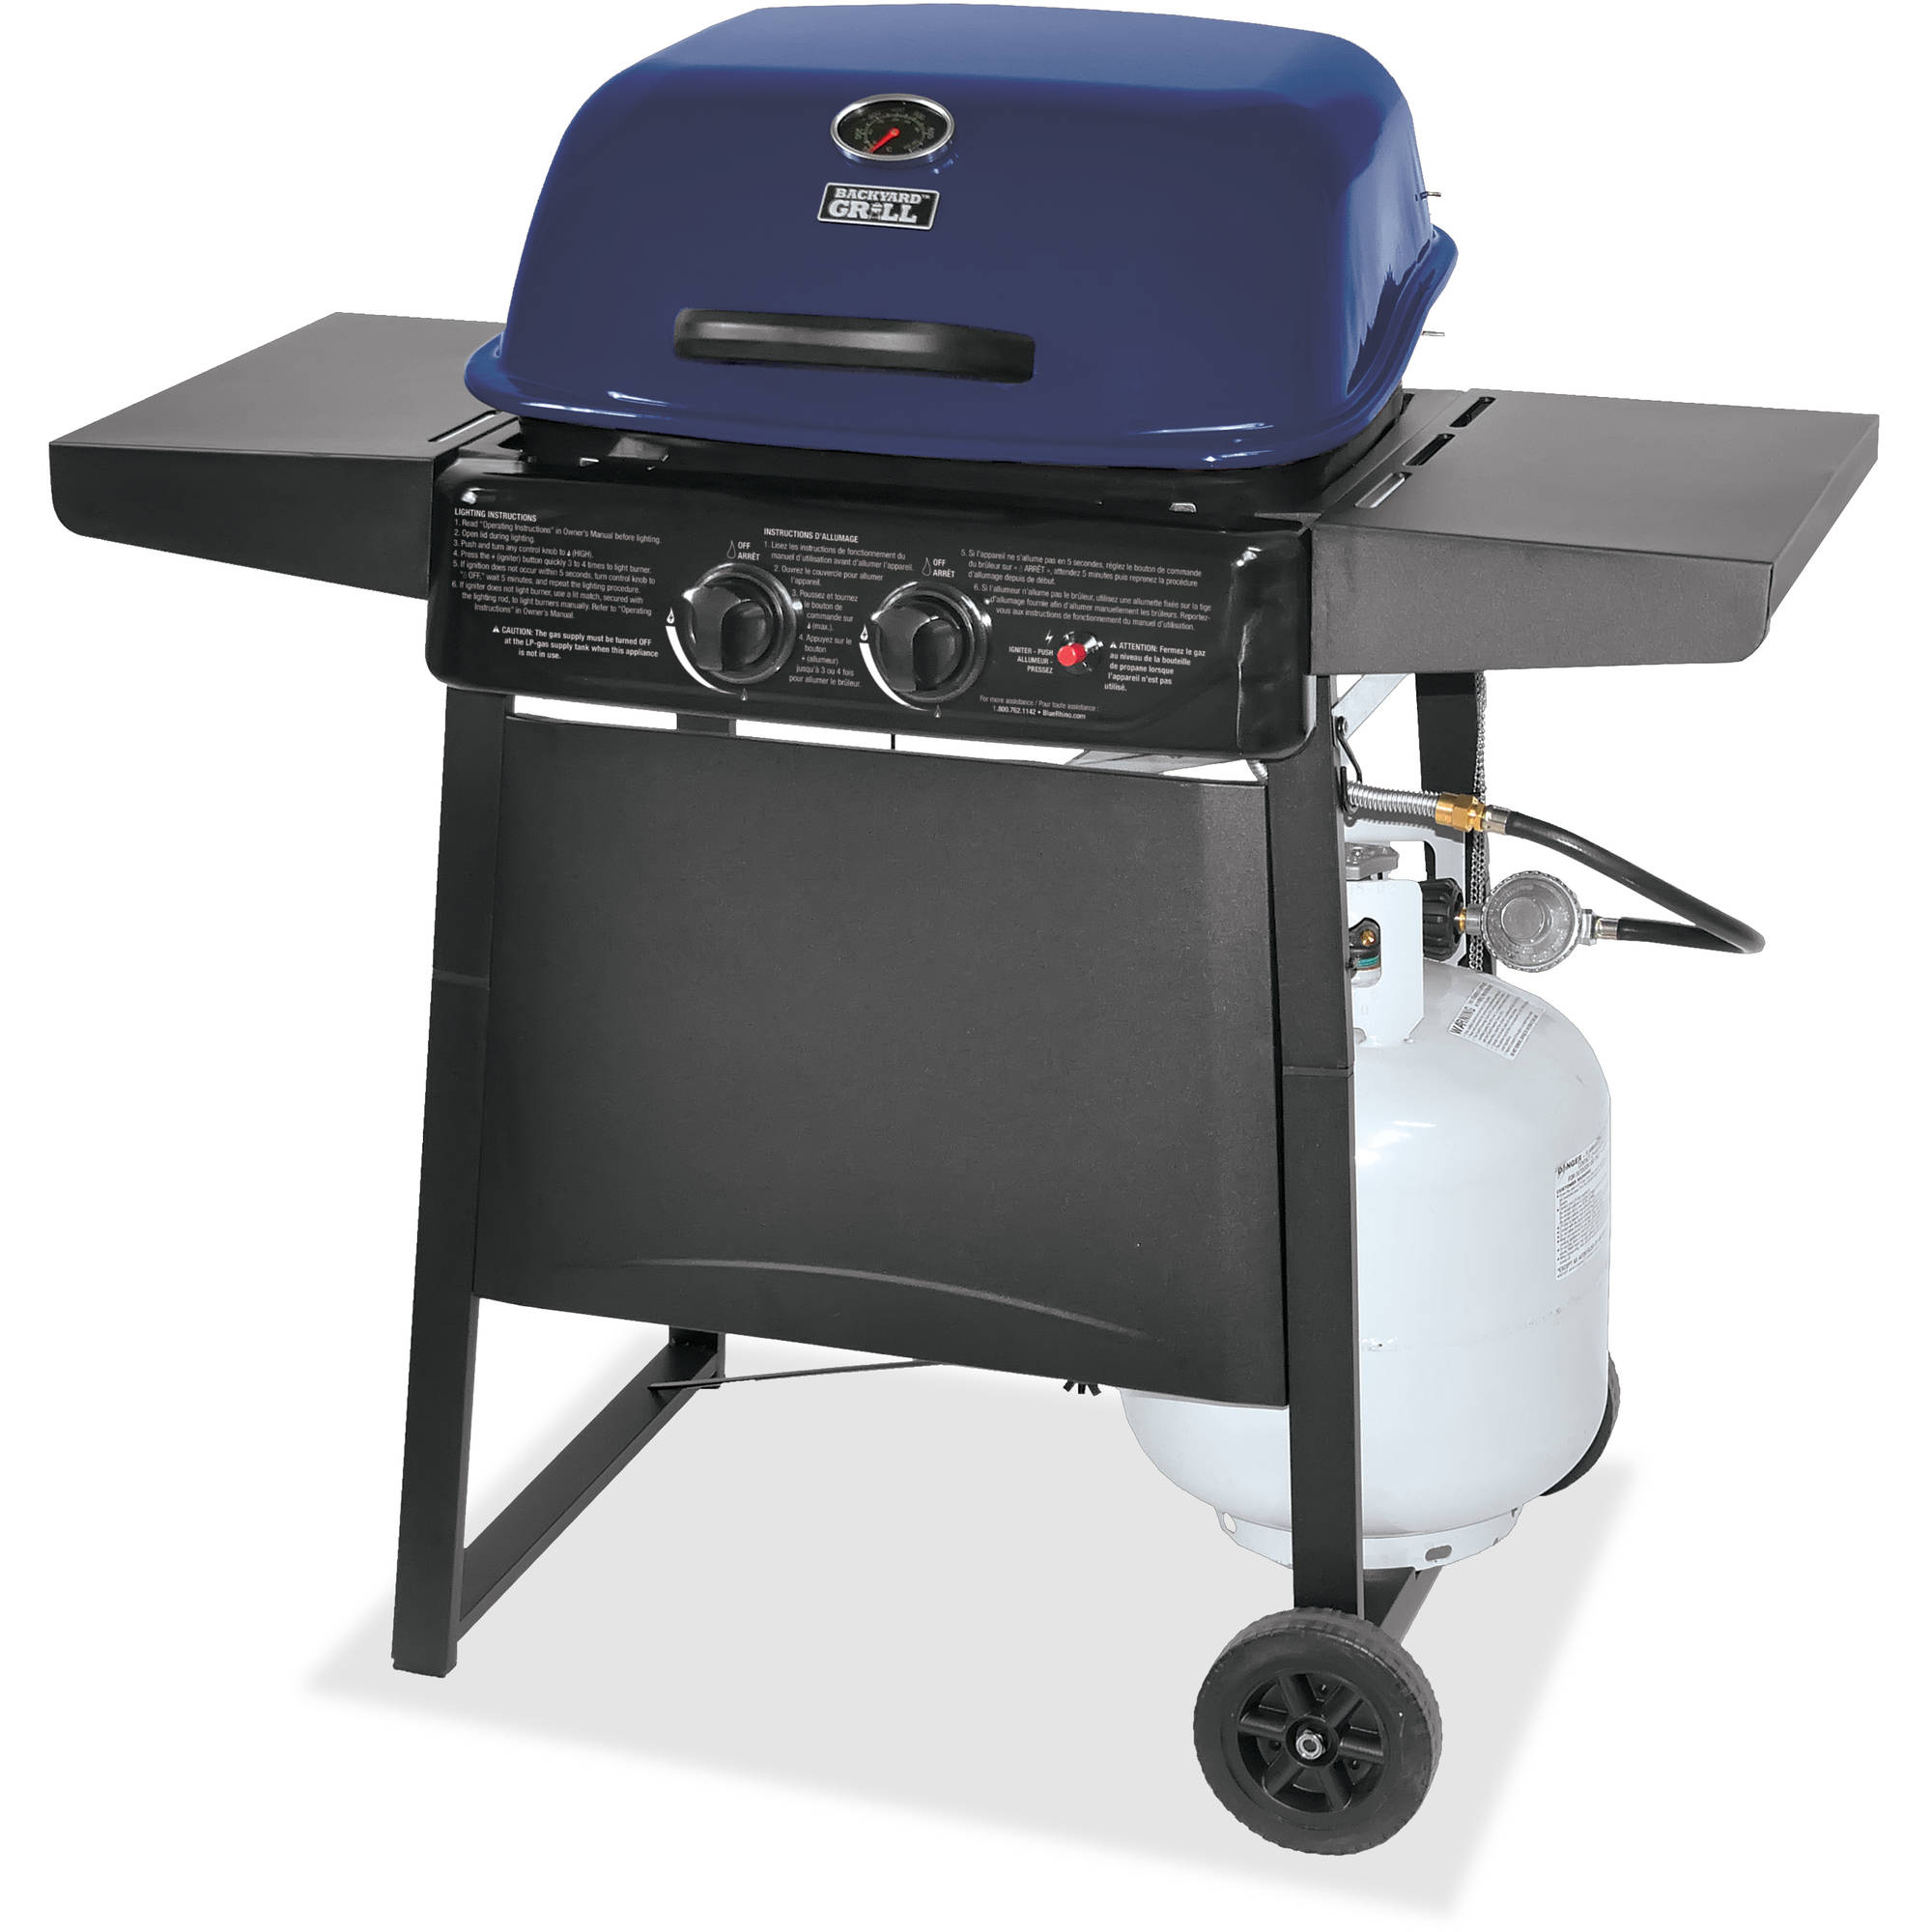 Backyard Grill 2-Burner Gas Grill, Blue